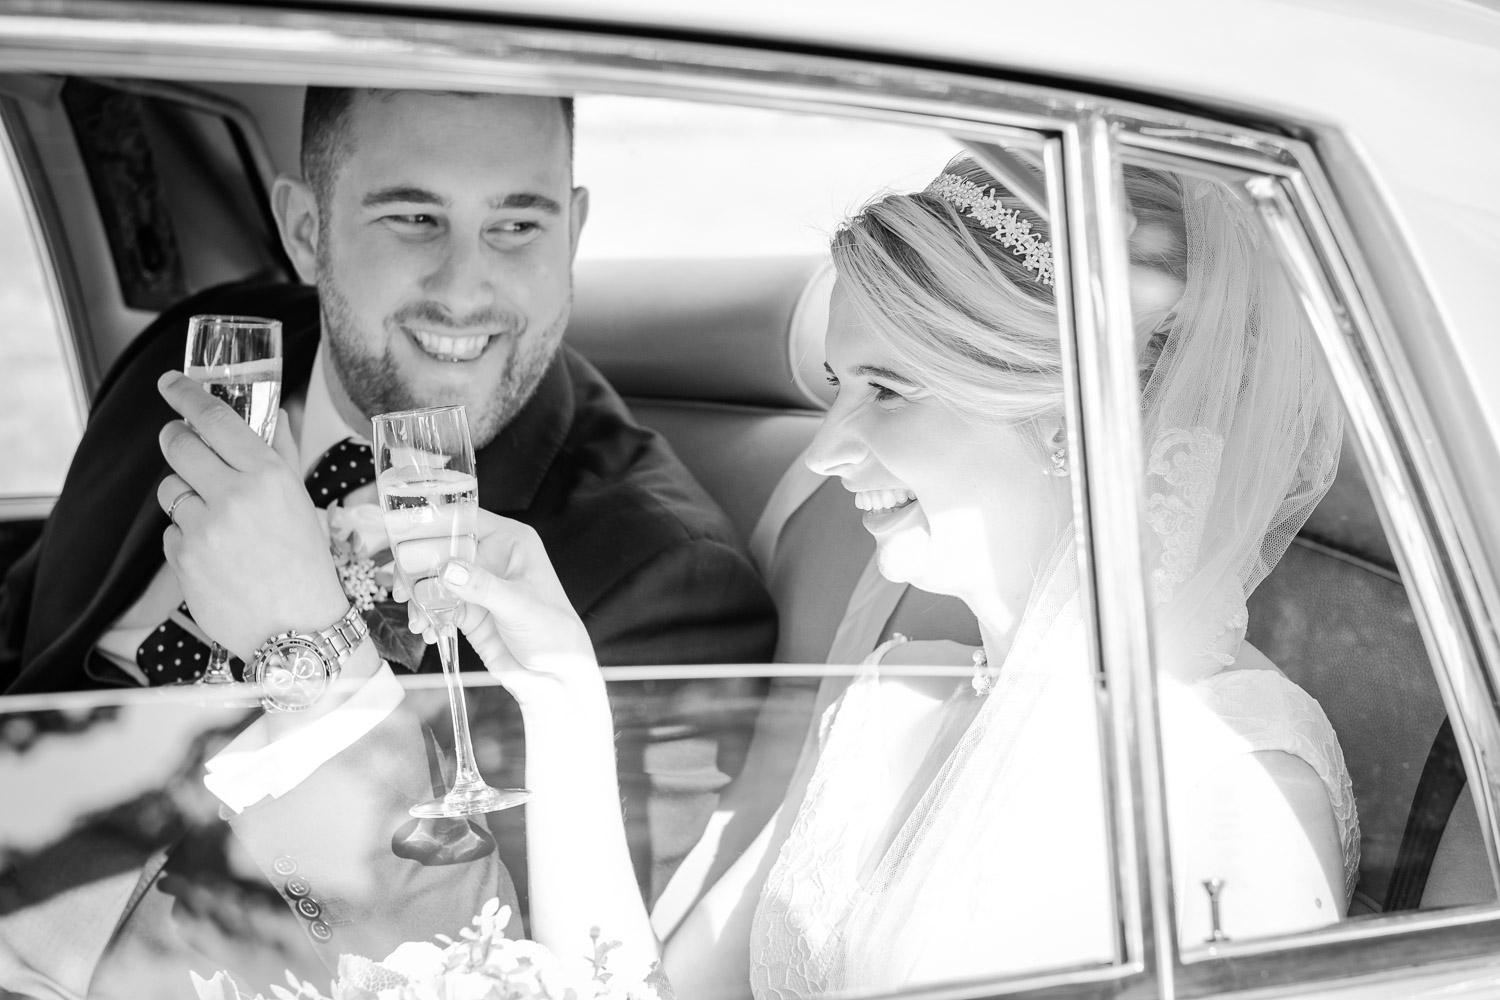 Documentary Wedding Photography - Remember the real moments